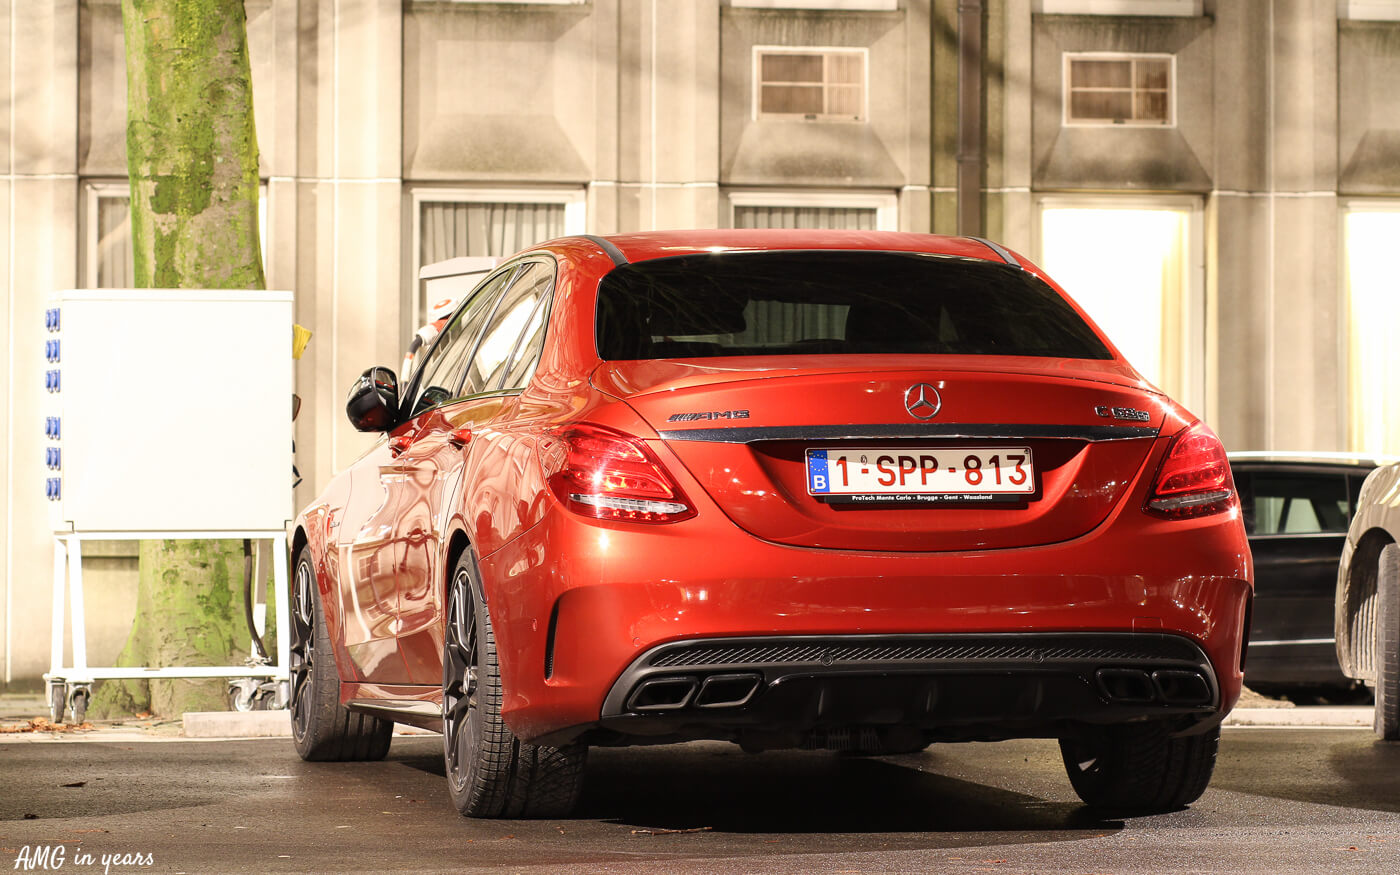 Spotted Designo Hyacinth Red Mercedes Amg C 63 S Amg In Years